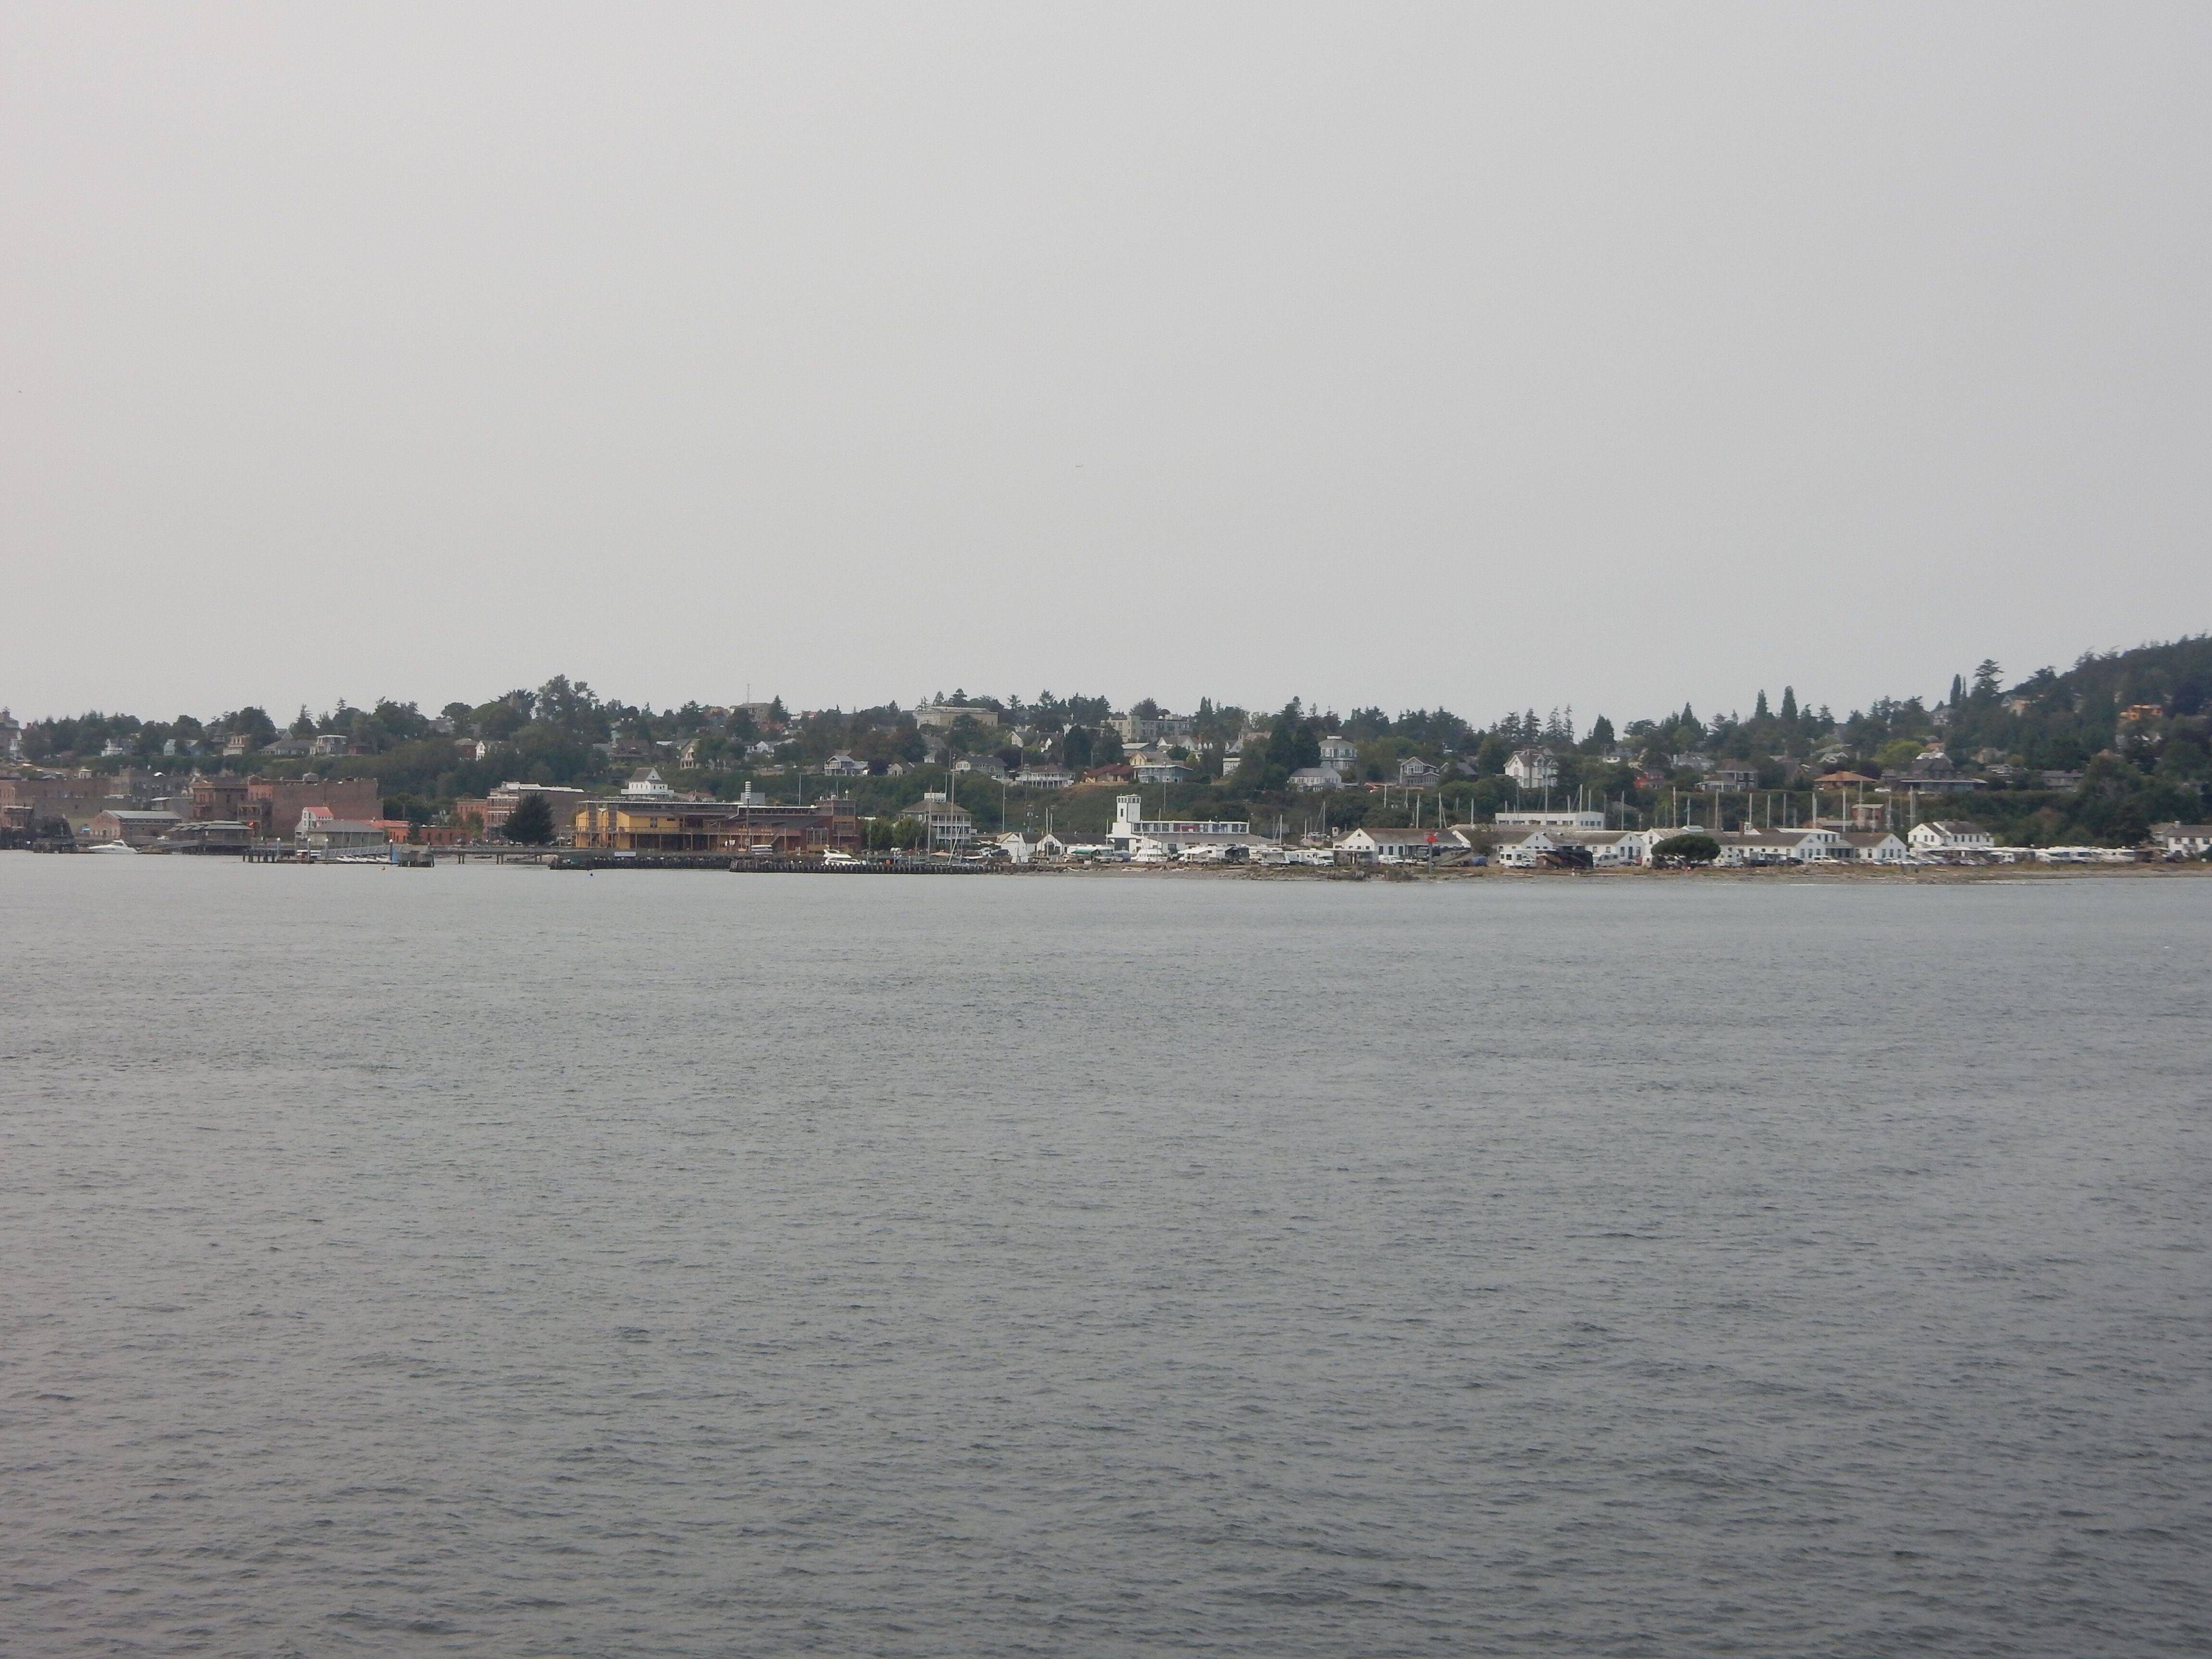 Departing Port Townsend on the Port Townsend/Whidbey Island ferry.